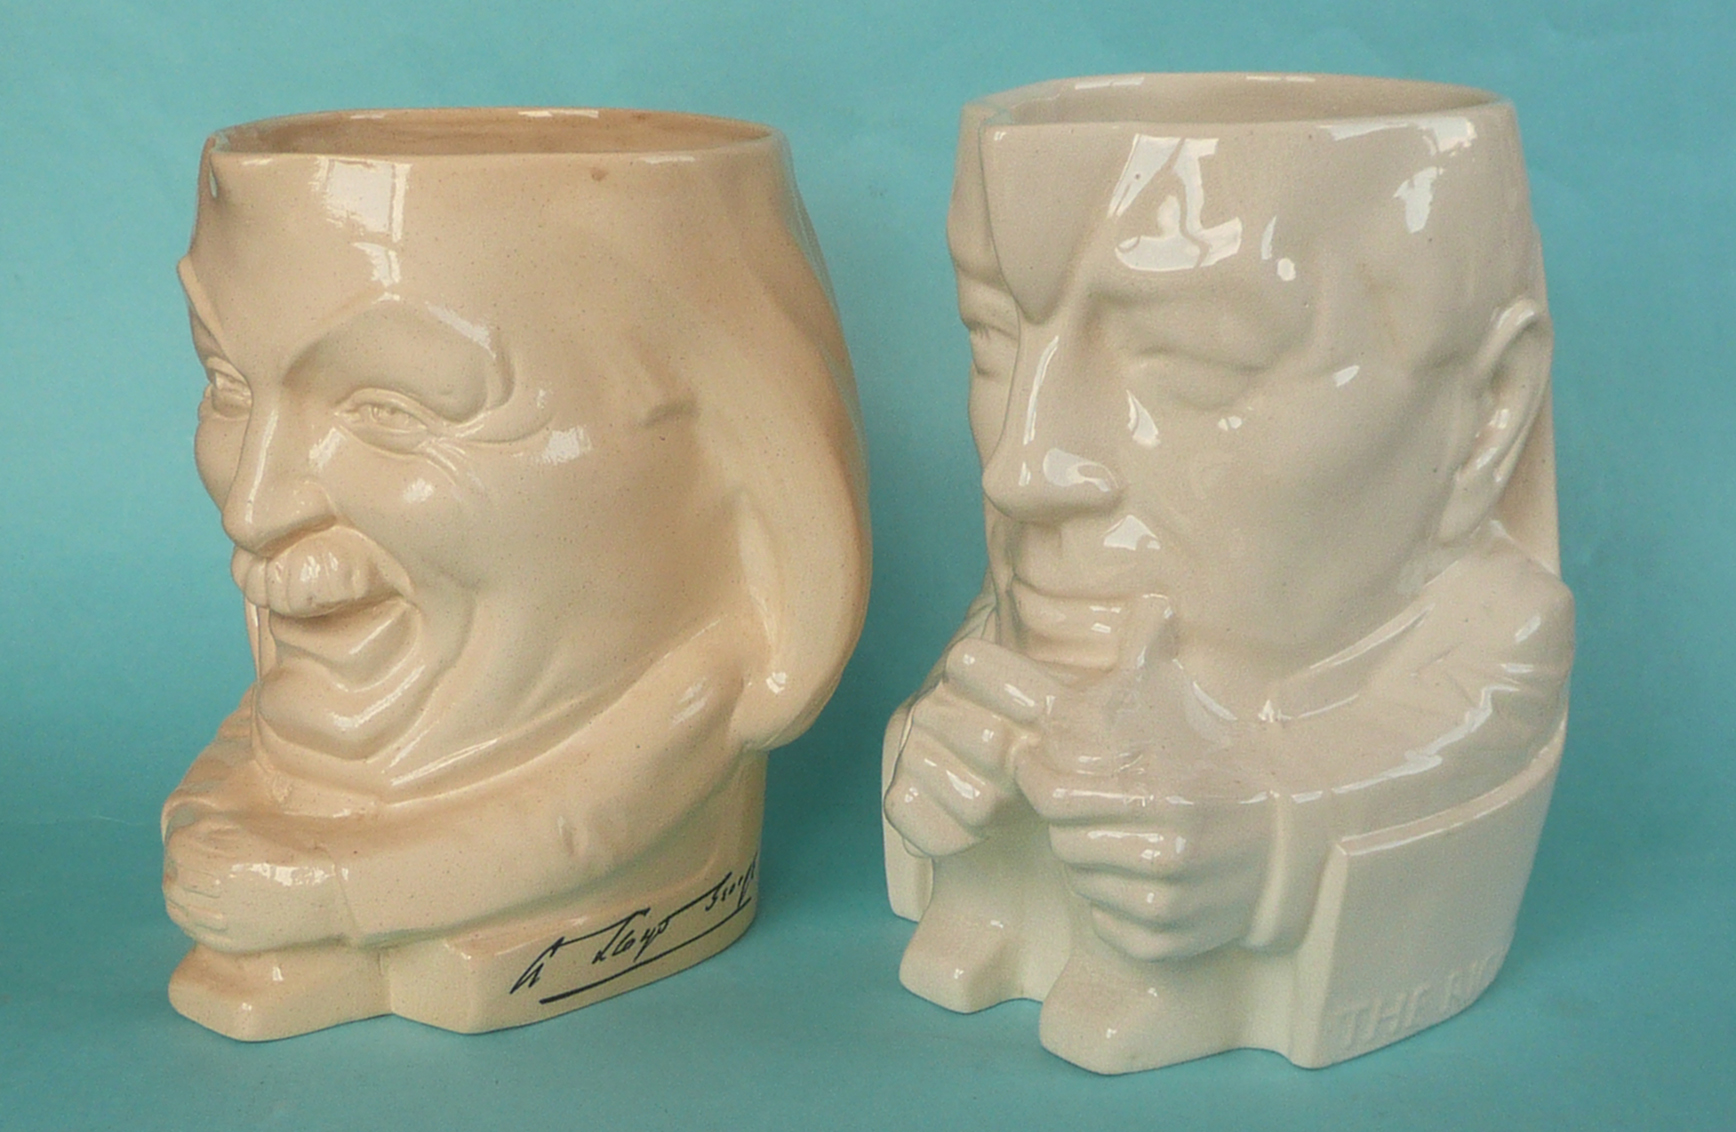 Lot 38 - An Ashstead pottery jug by Percy Metcalfe depicting Lloyd George, 182mm and another depicting